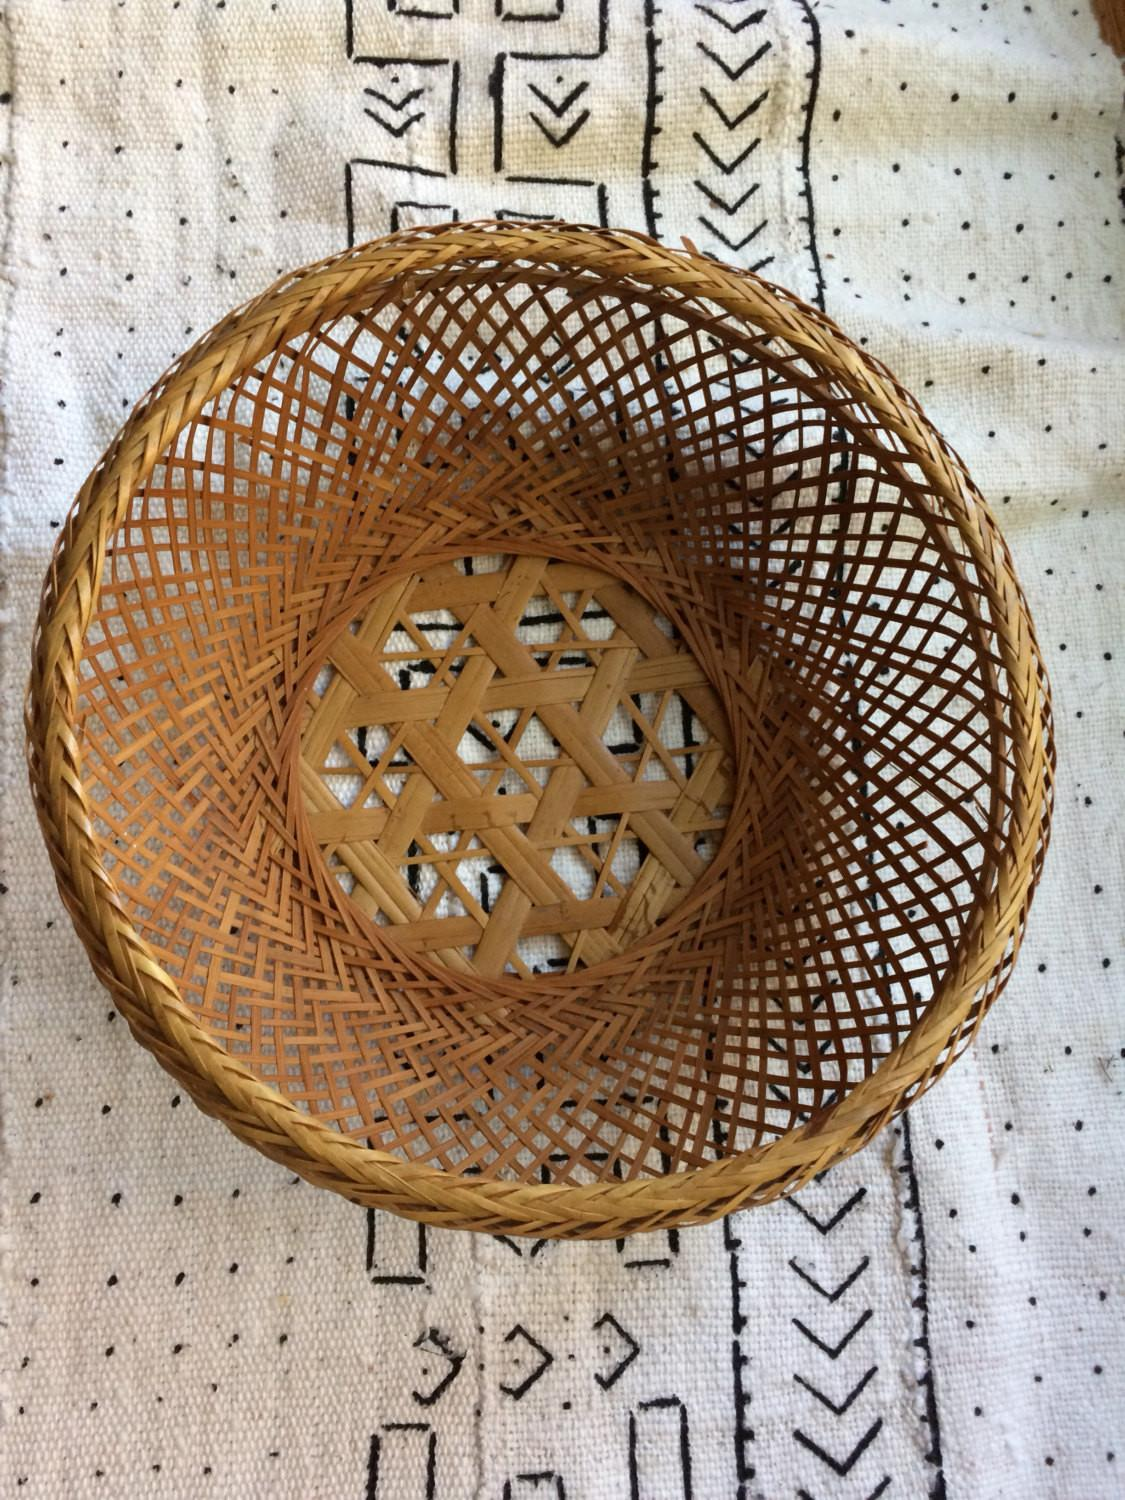 Vintage Japanese Bamboo Rattan Wicker Basket Wall Decor